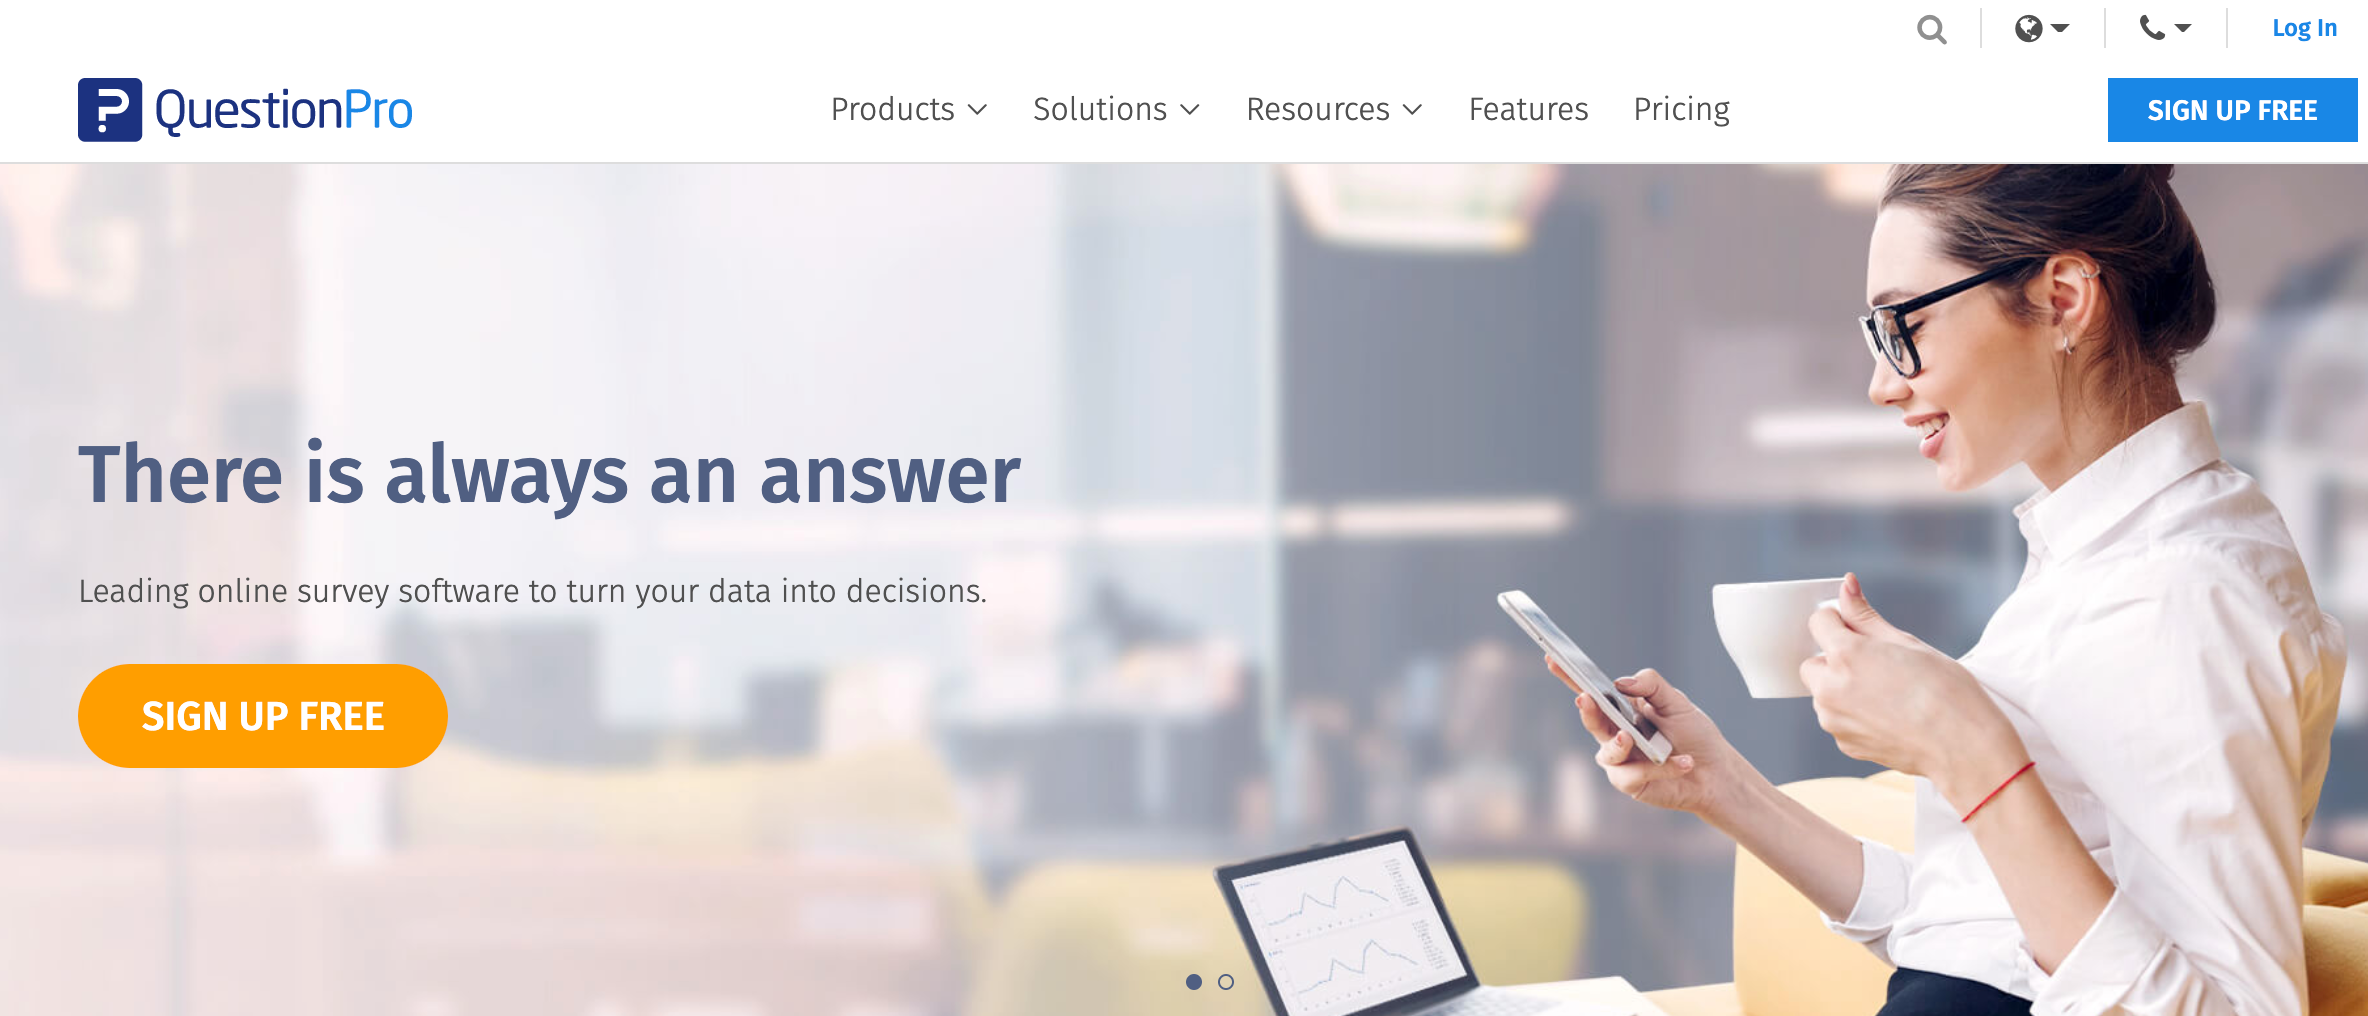 QuestionPro is simple and easy to use and includes tools for creating, distributing, and analyzing online feedbacks.